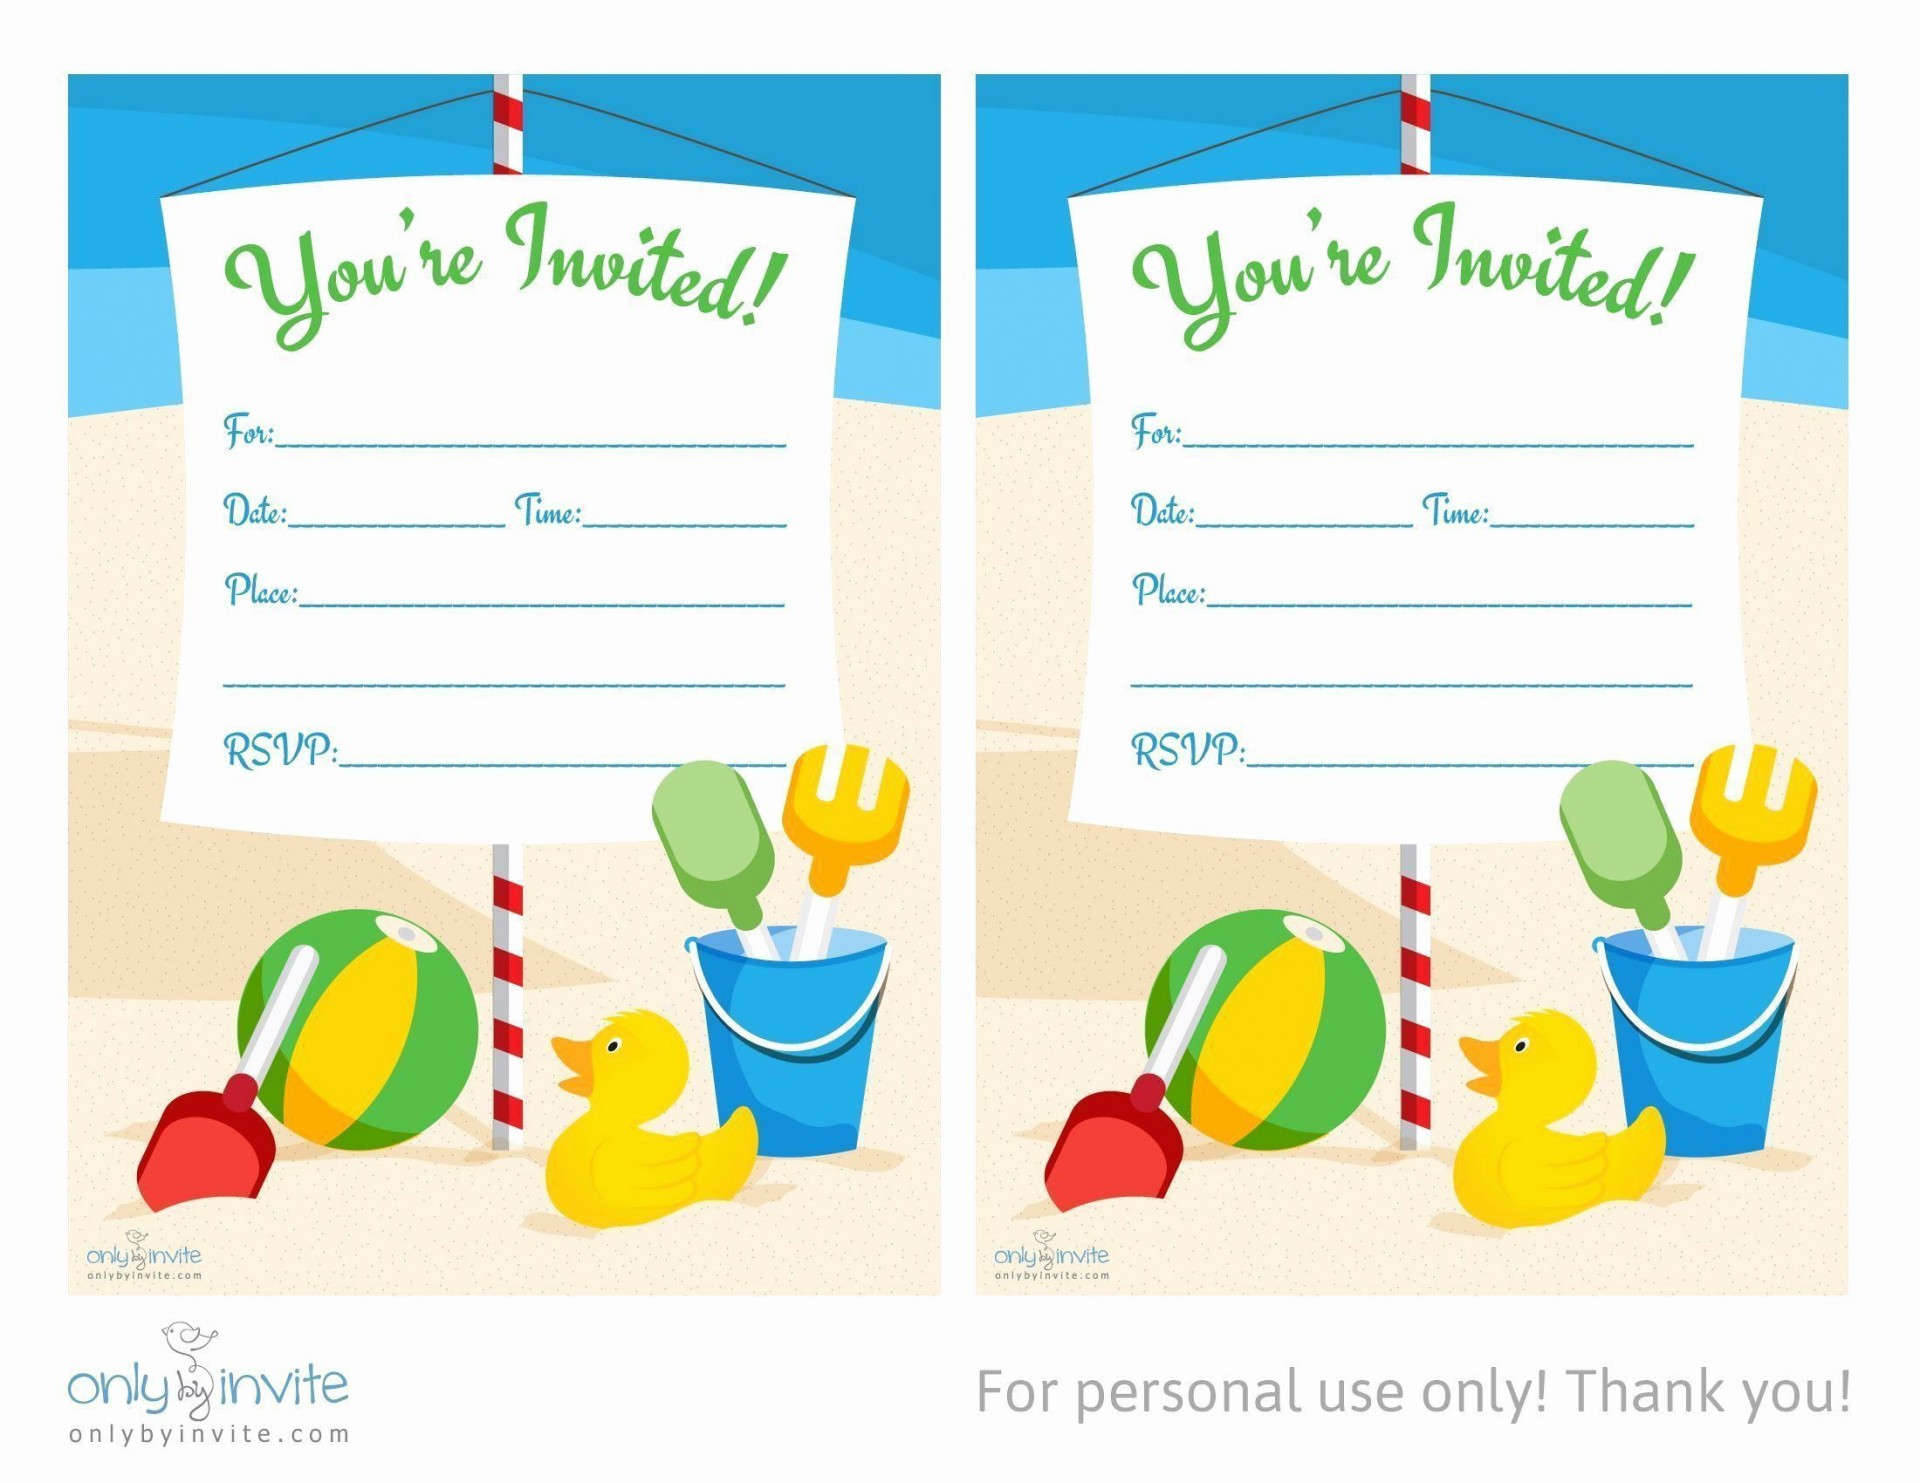 006 Excellent Birthday Invitation Template Word 2020 Concept 1920